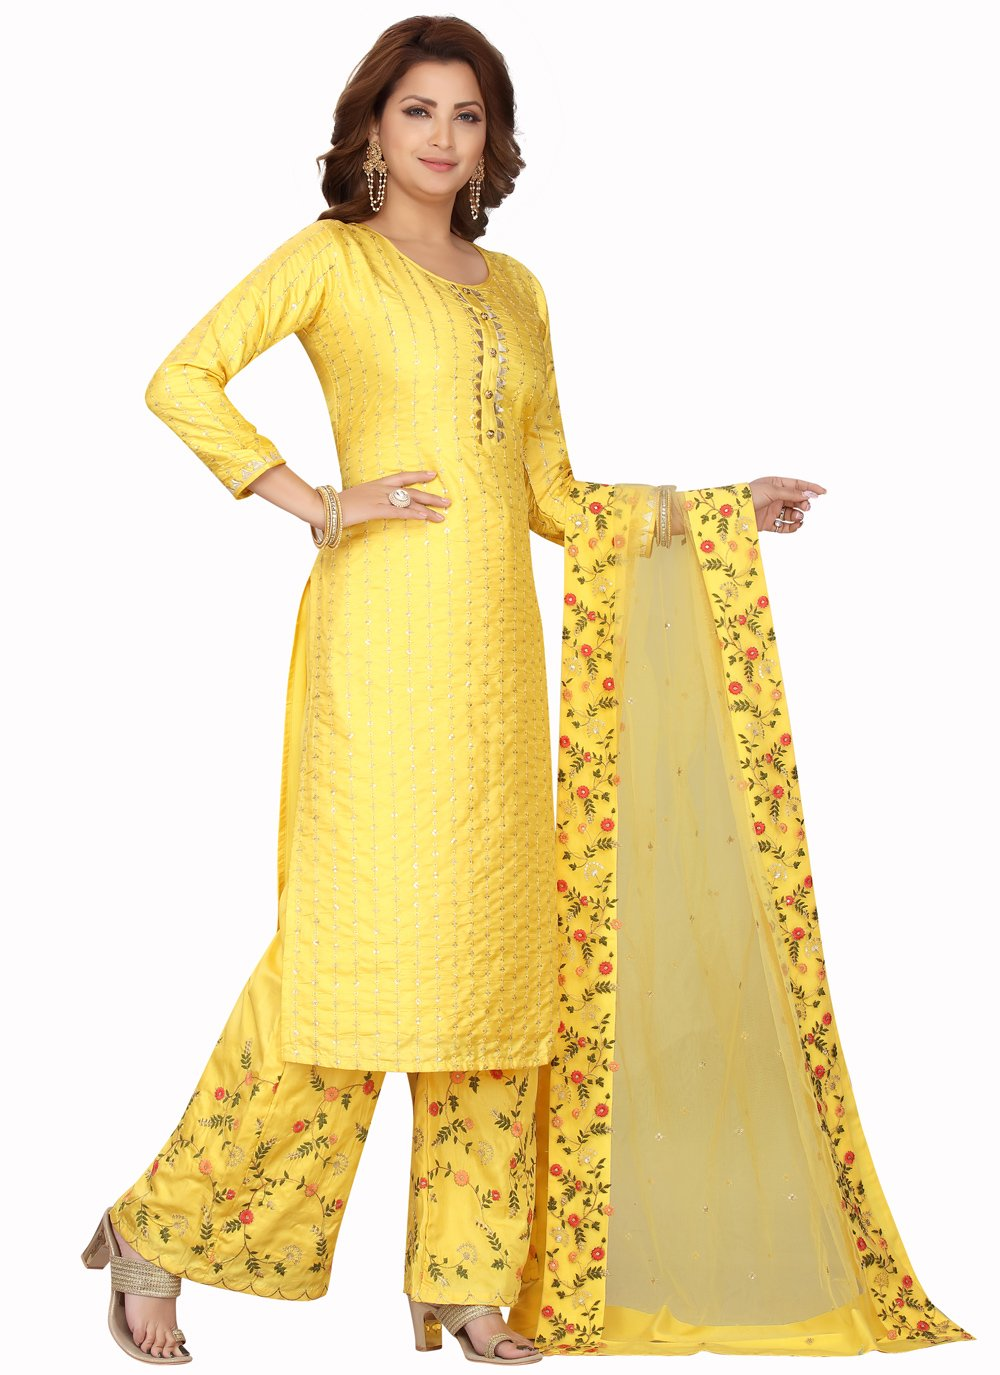 Chanderi Yellow Embroidered Readymade Suit